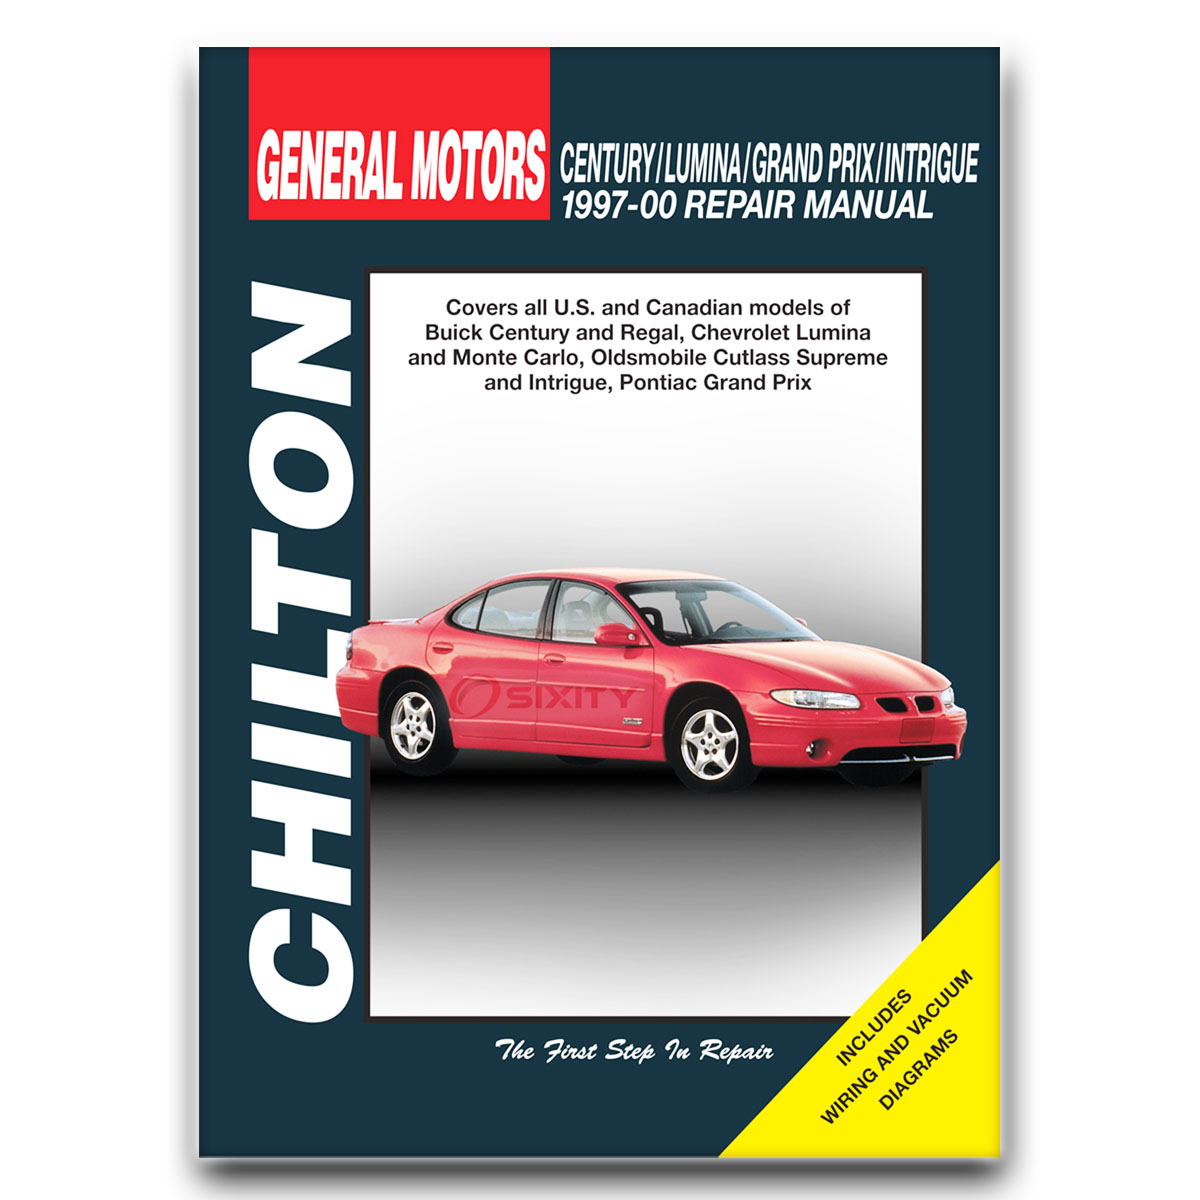 Chilton Repair Manual for Buick Regal LS 25th Anniversary Edition GS GSE  LSE be